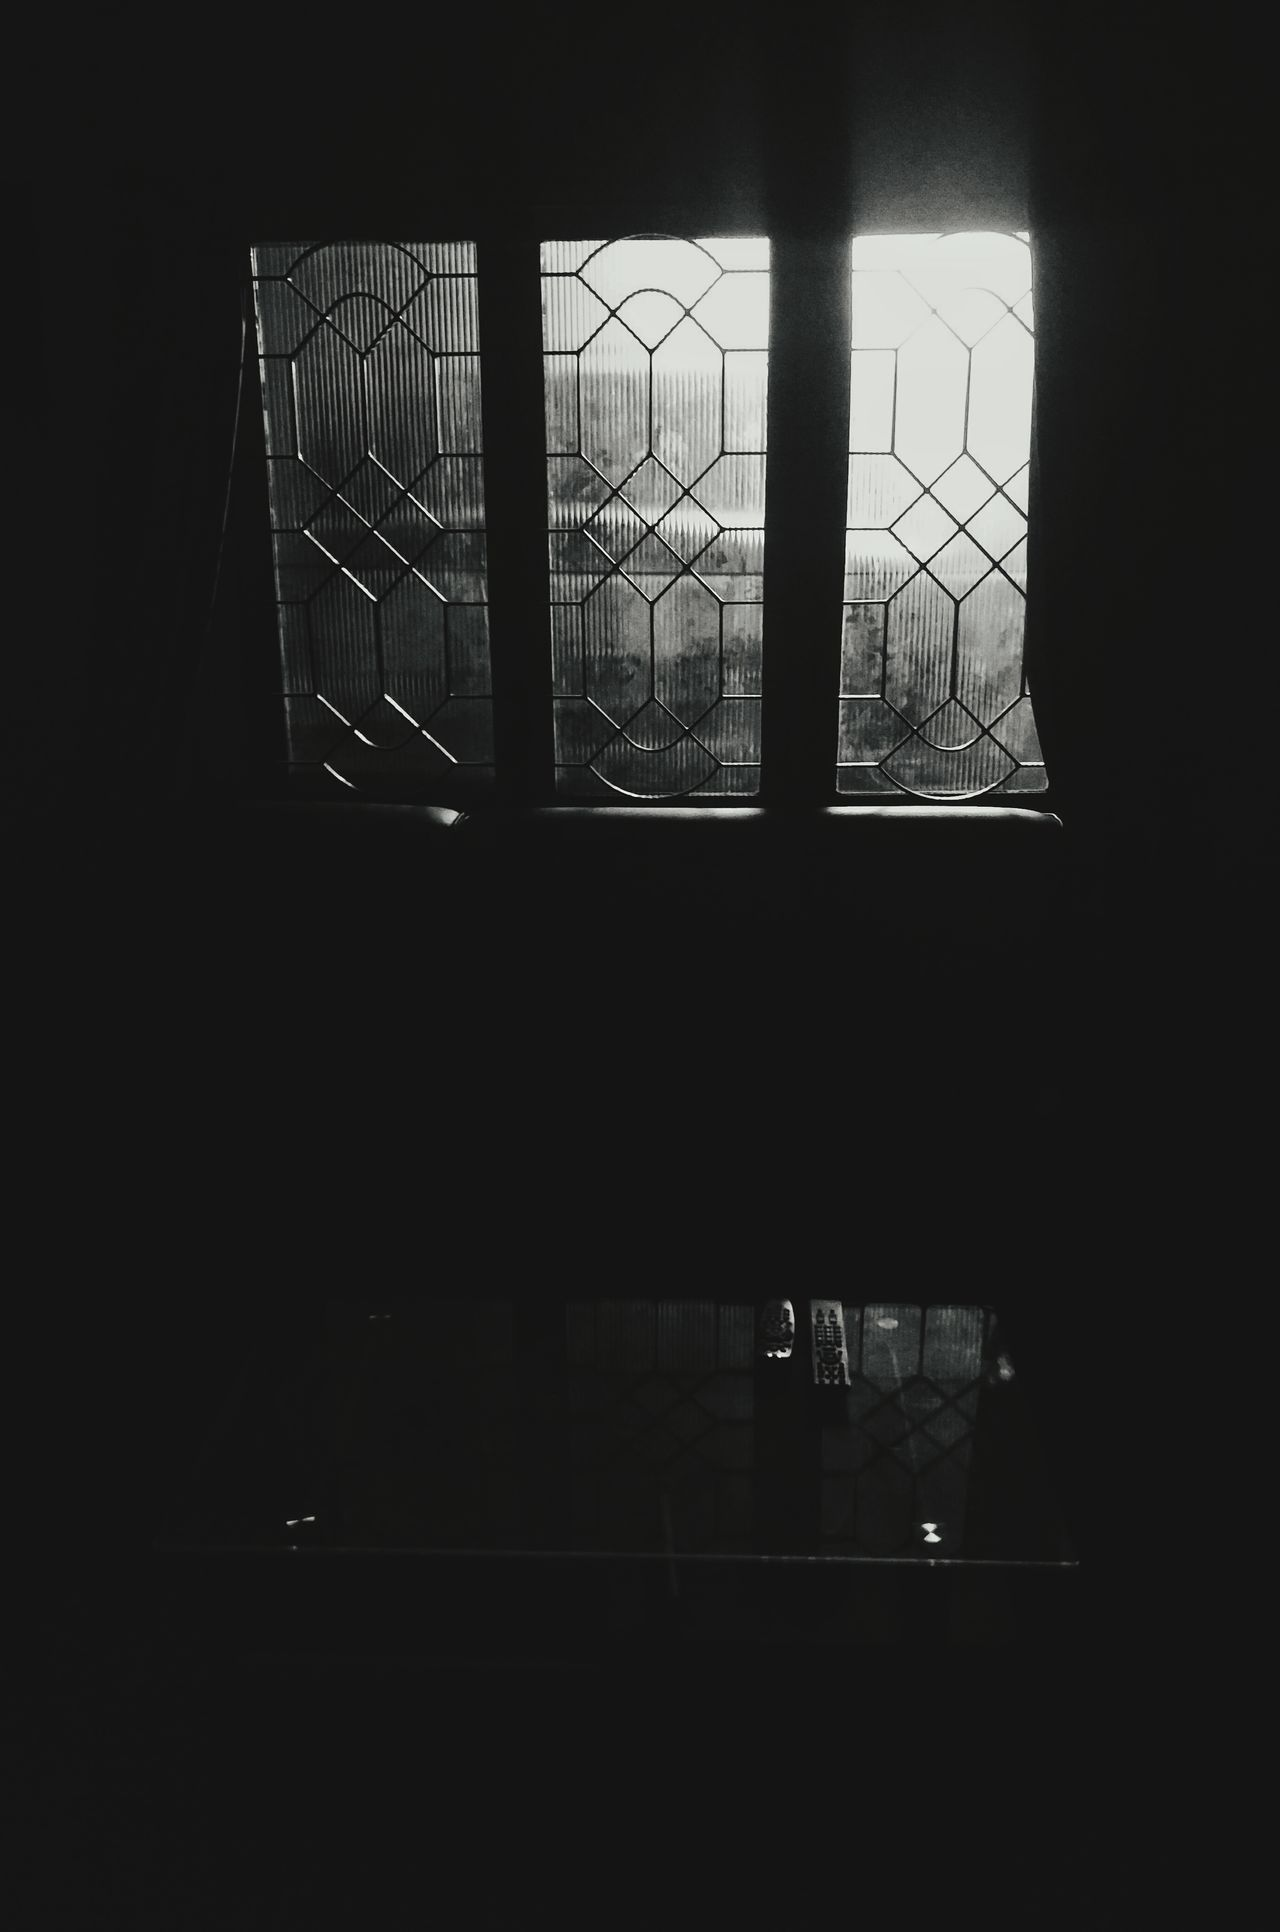 Indoors  No People Nightphotography Oneplusphotograpgy Oneplus 2 India_gram Chennai,India Black And White Black And White Collection  Eyeemphotography Eyeemindia Windows Light And Shadow Table Living Room